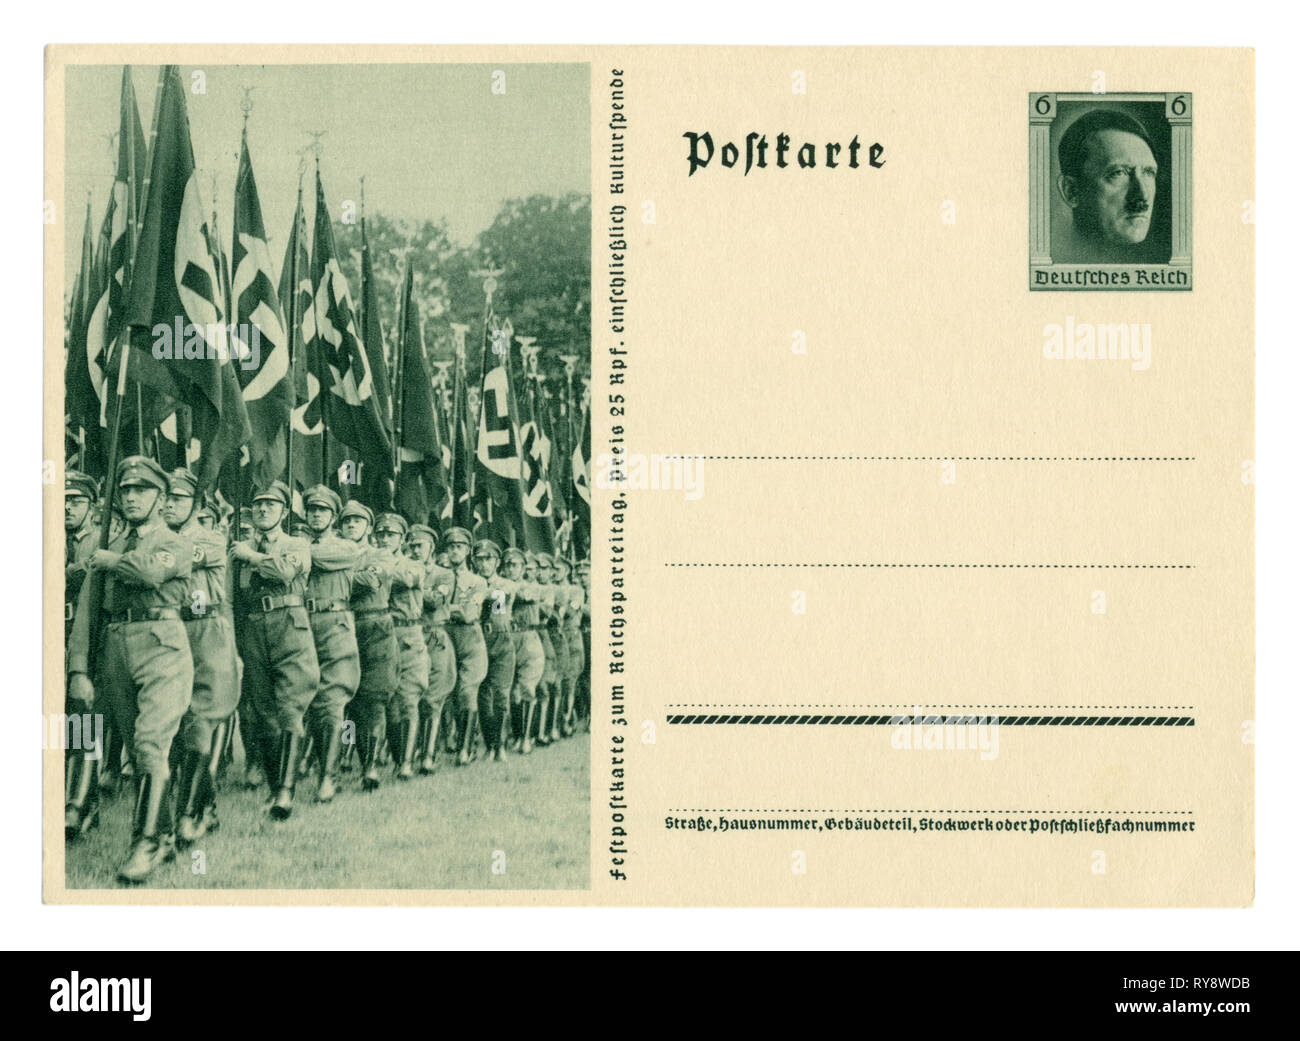 German historical postal card: The 9th party Congress of the NSDAP in Nuremberg in 1937, political leaders on the March with flags. Germany - Stock Image